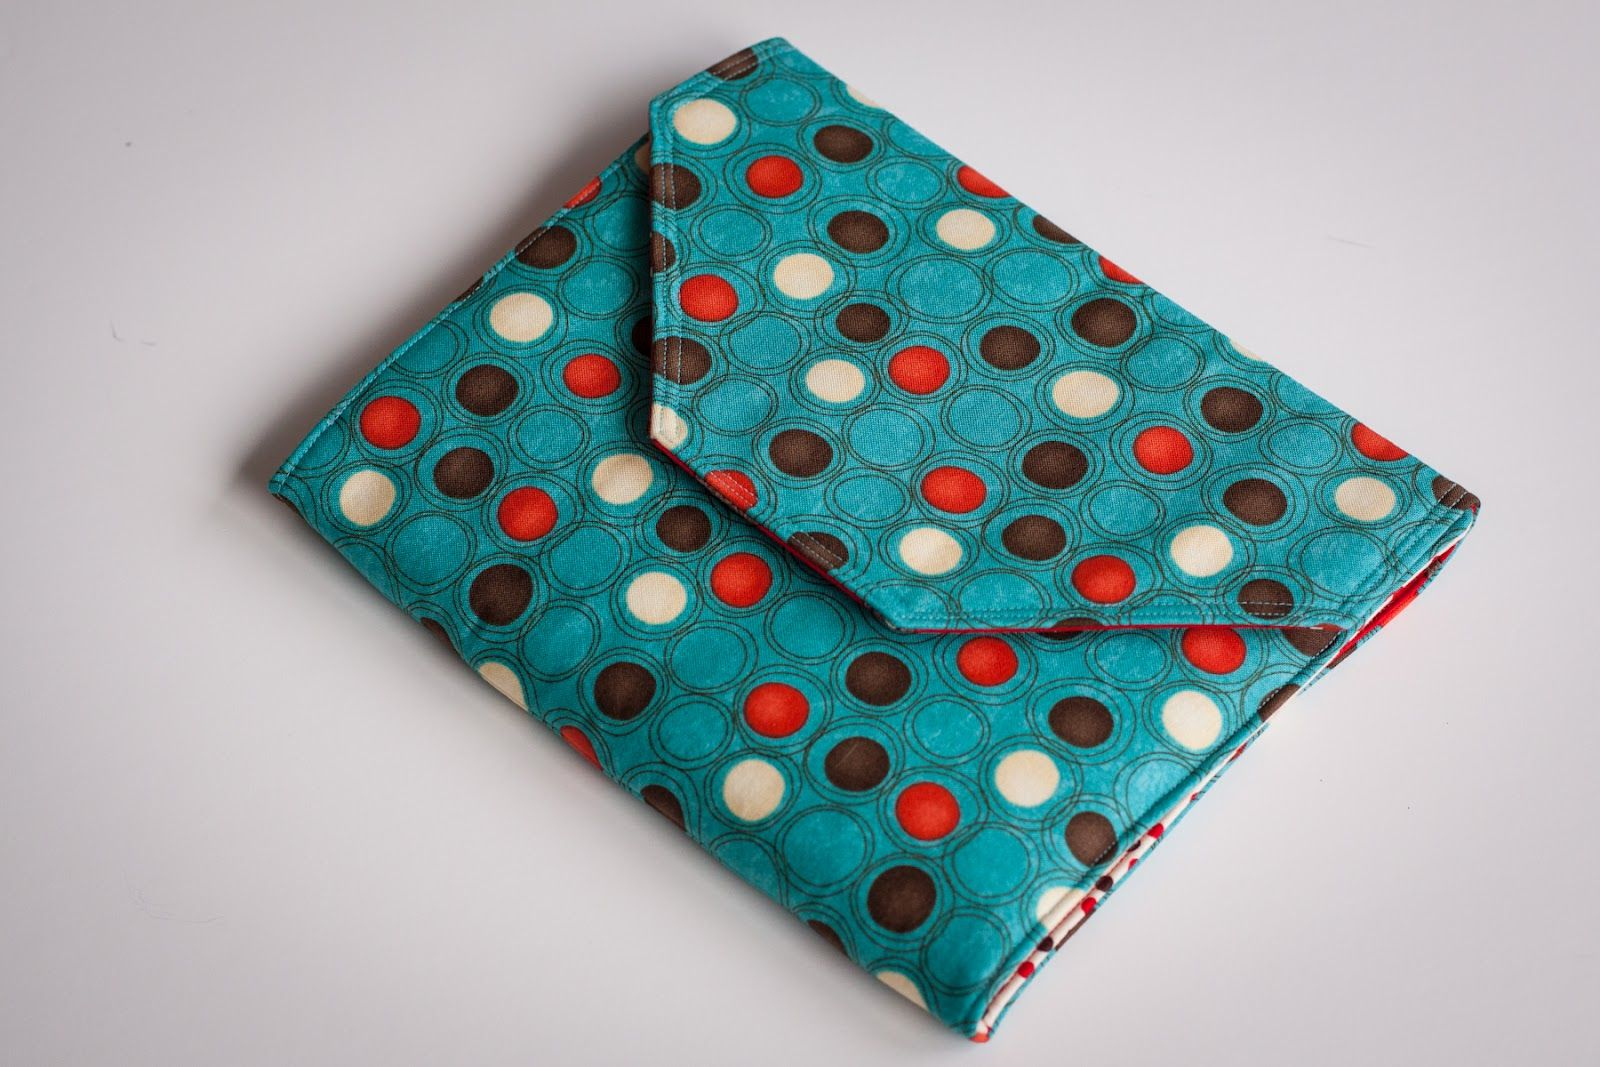 I spent today shopping for fabric and making my first Pencil/Crayon Wallet using a pattern by basketsofpatterns.etsy.com  . Emil...